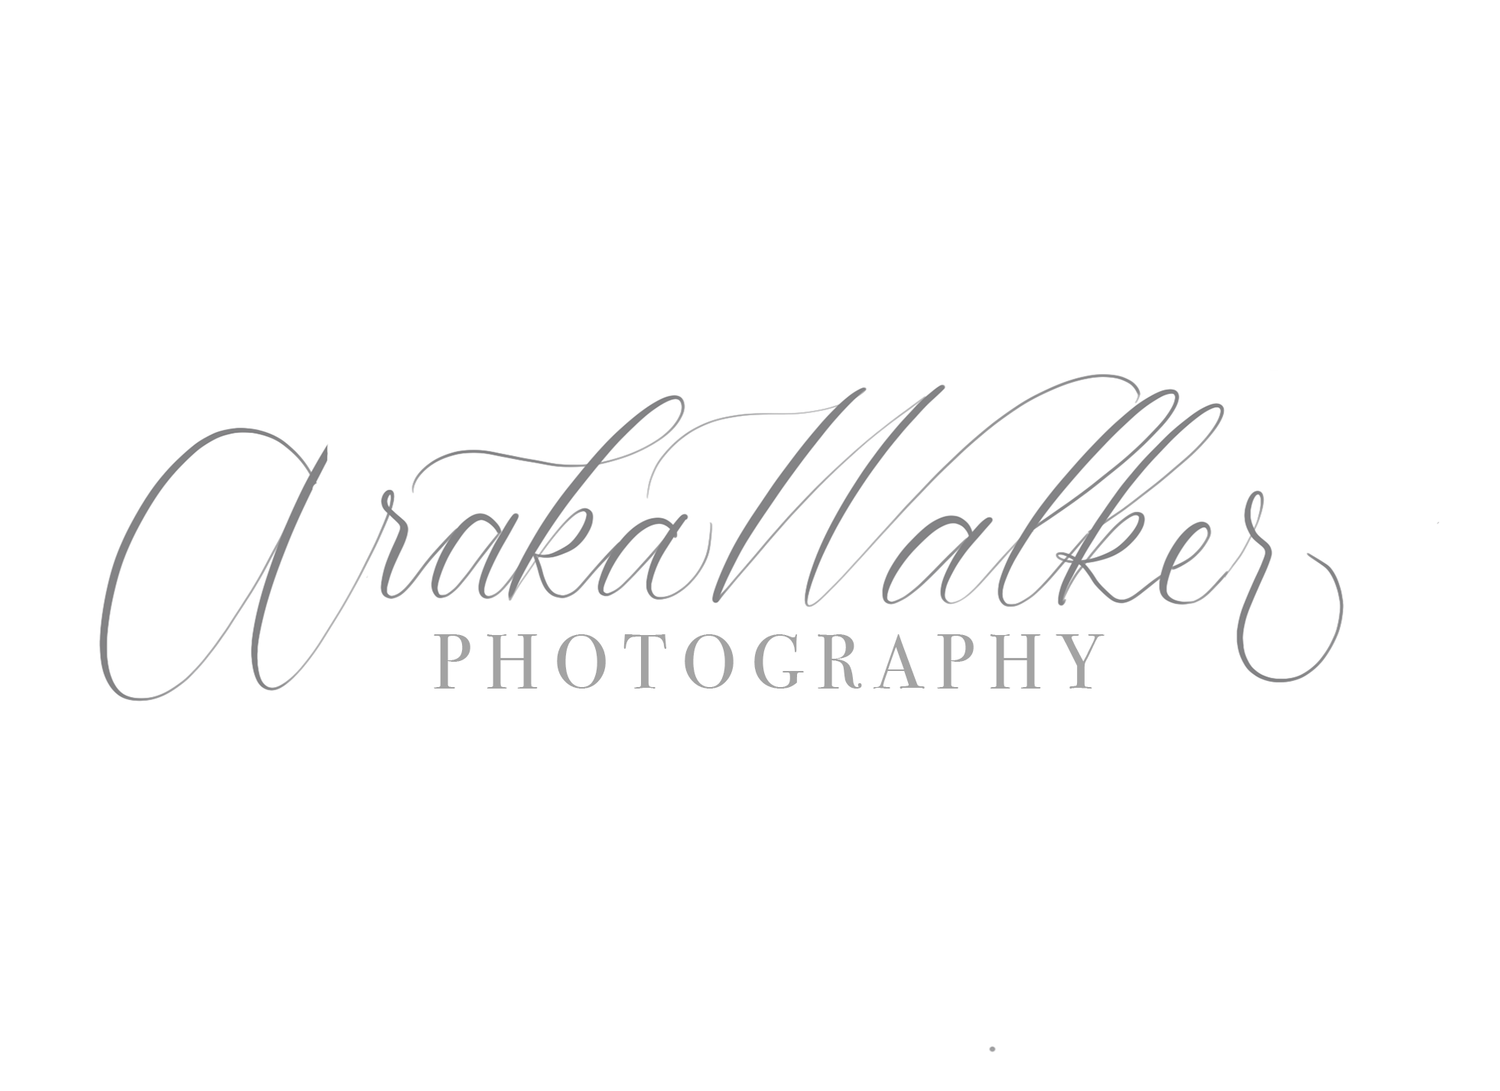 Araka Walker Photography